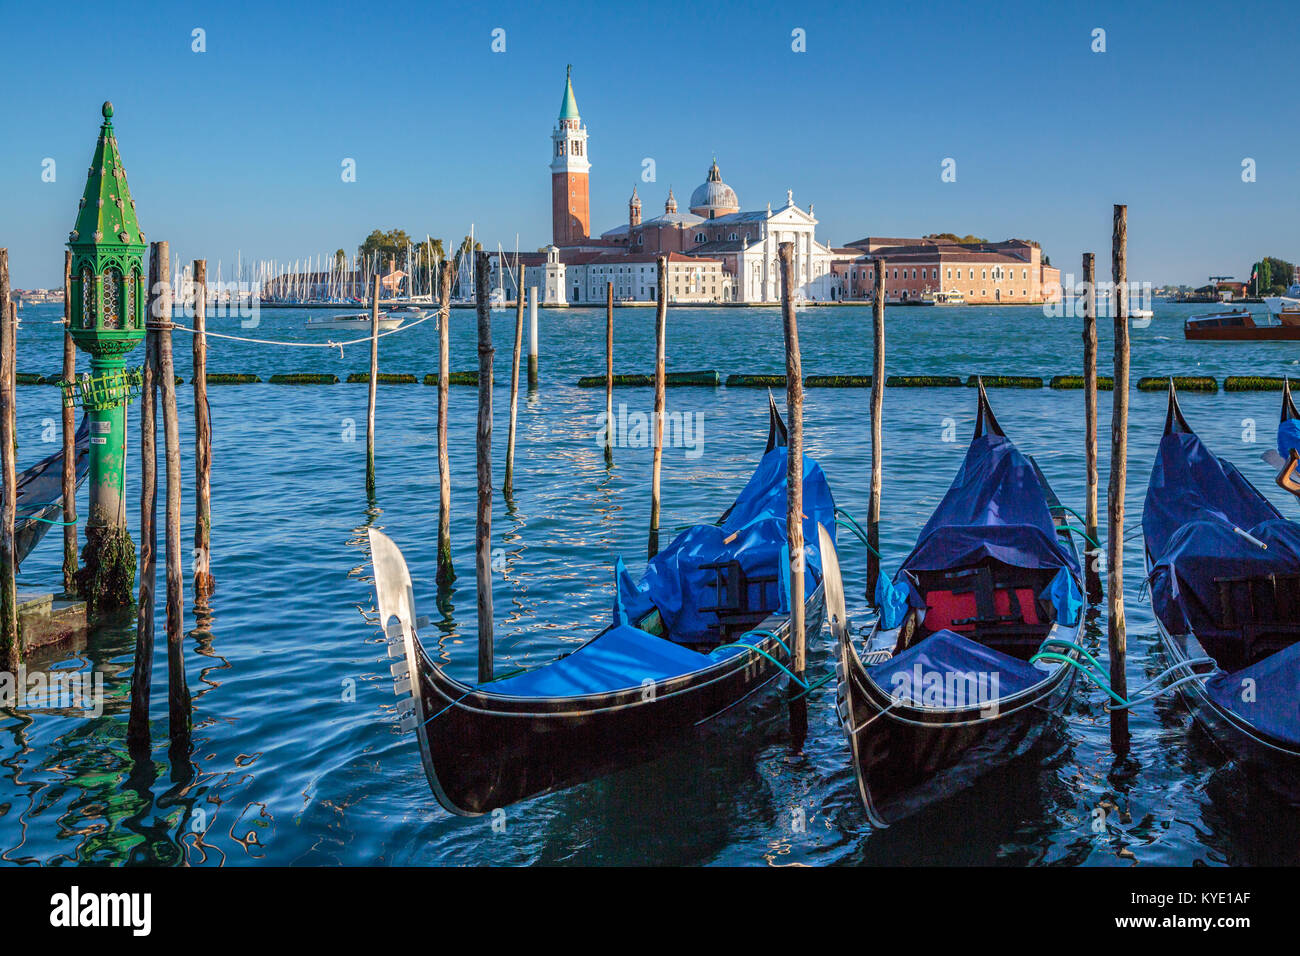 Parked gondolas and the Church of San Giorgio Maggiore in Veneto, Venice, Italy, Europe, - Stock Image